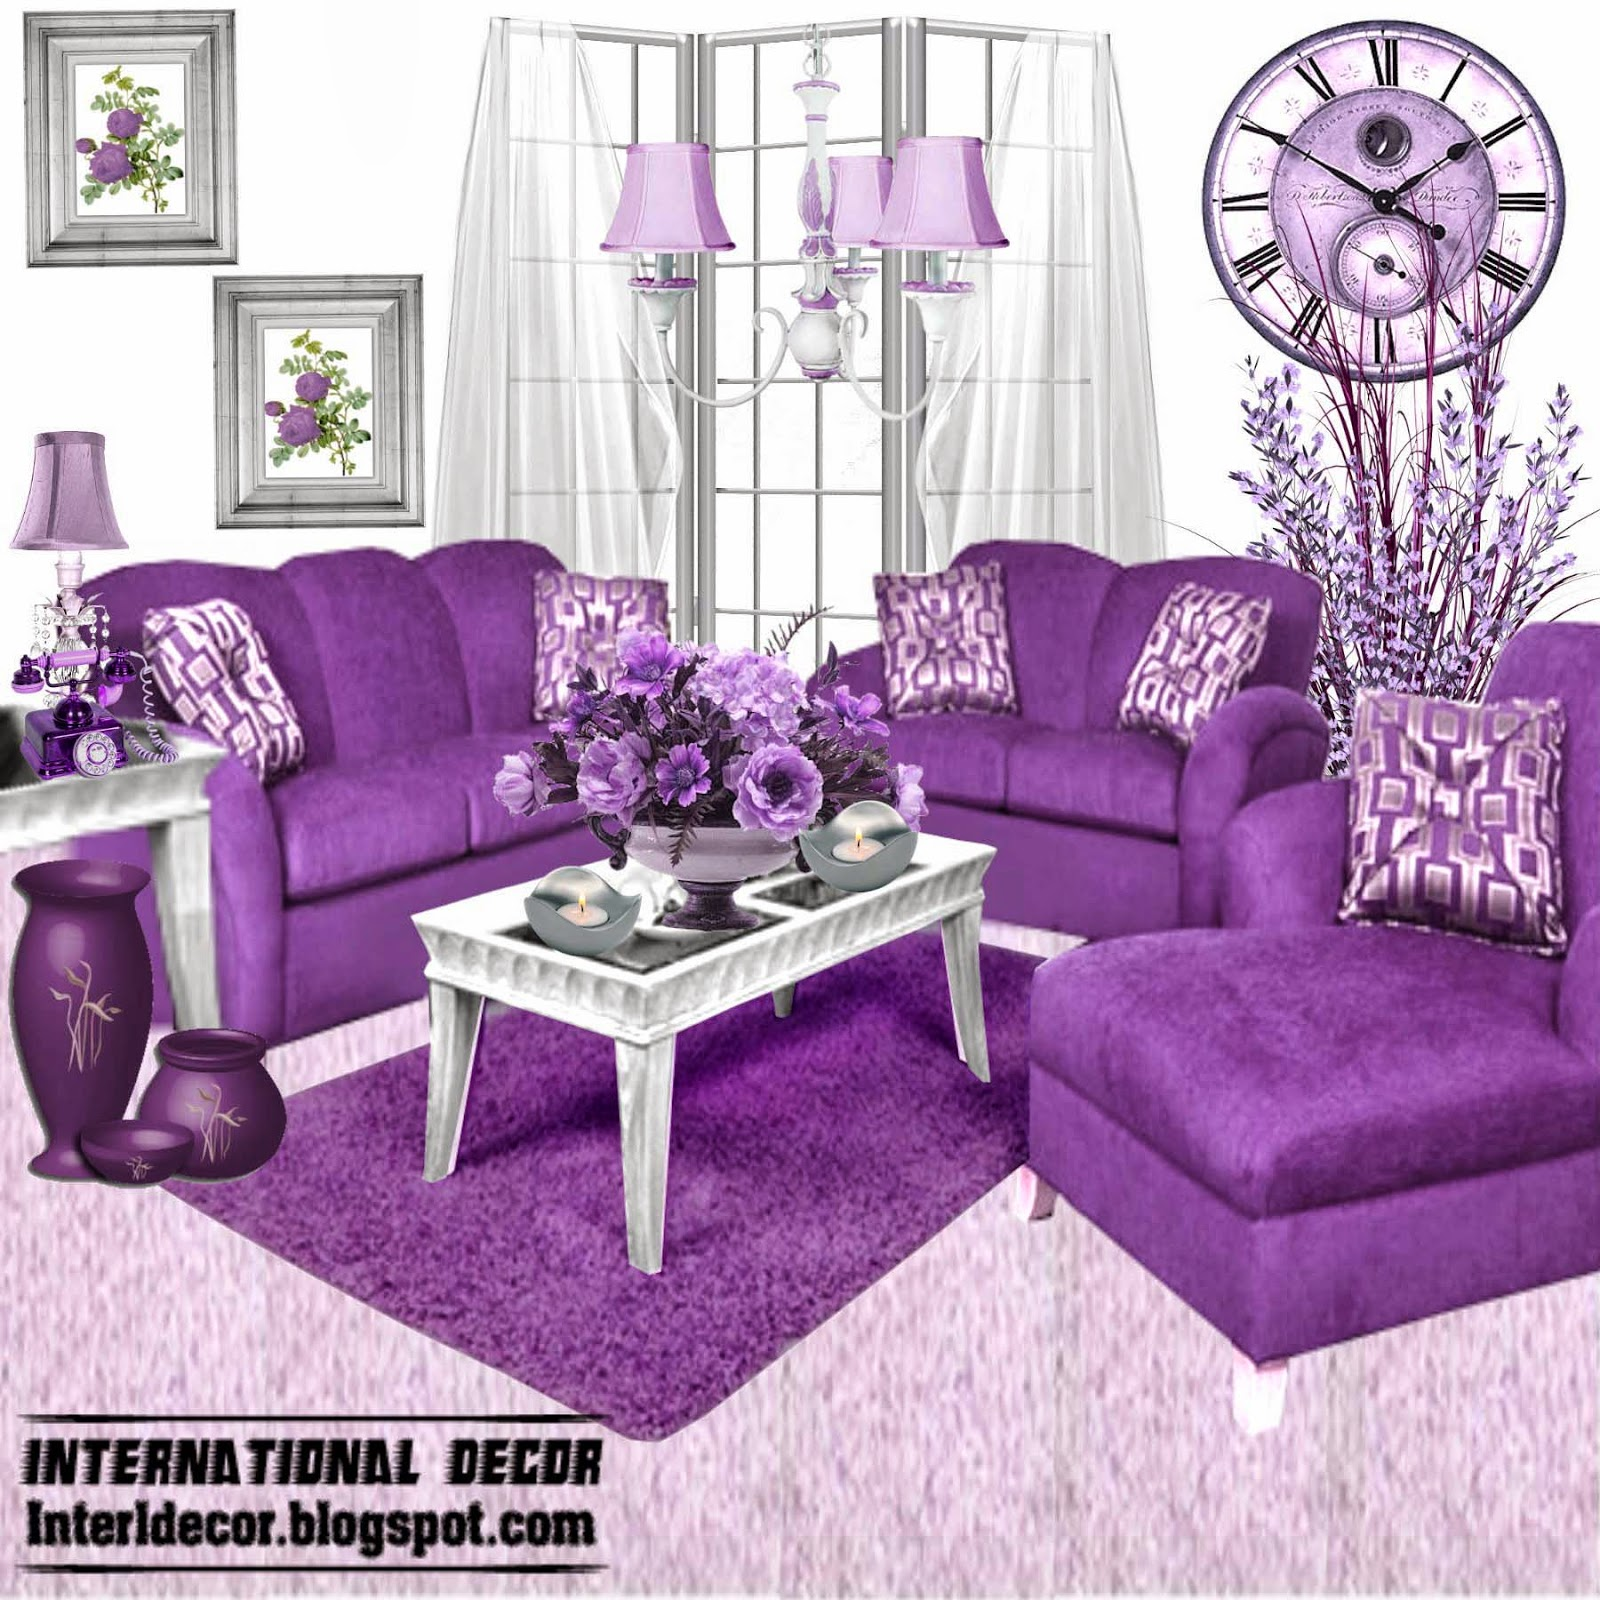 Luxury purple furniture sets sofas chairs for living for Living room furniture ideas